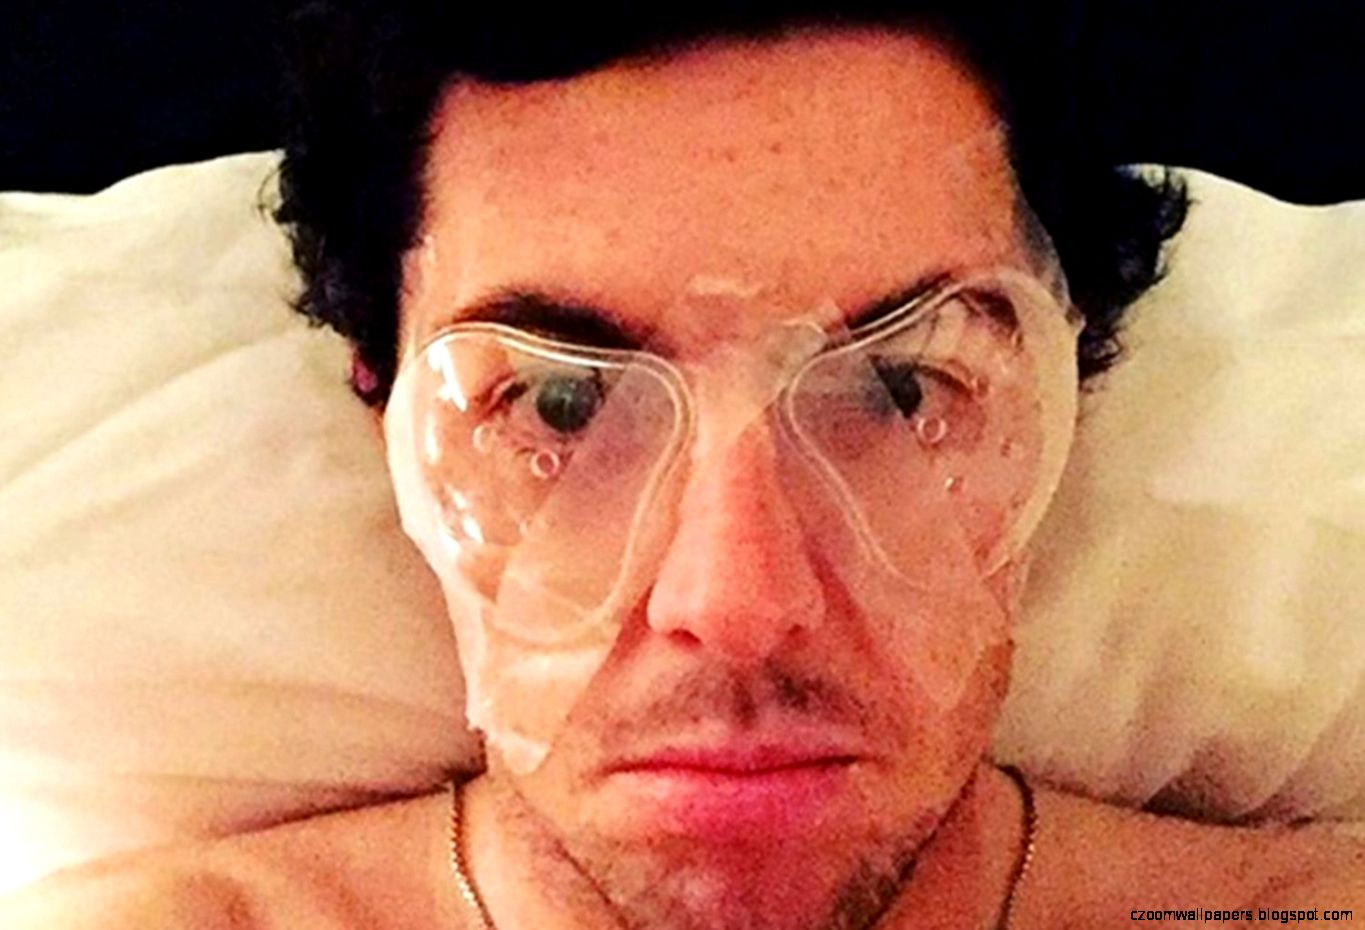 Leading surgeon reckons Rory McIlroys laser eye surgery is an